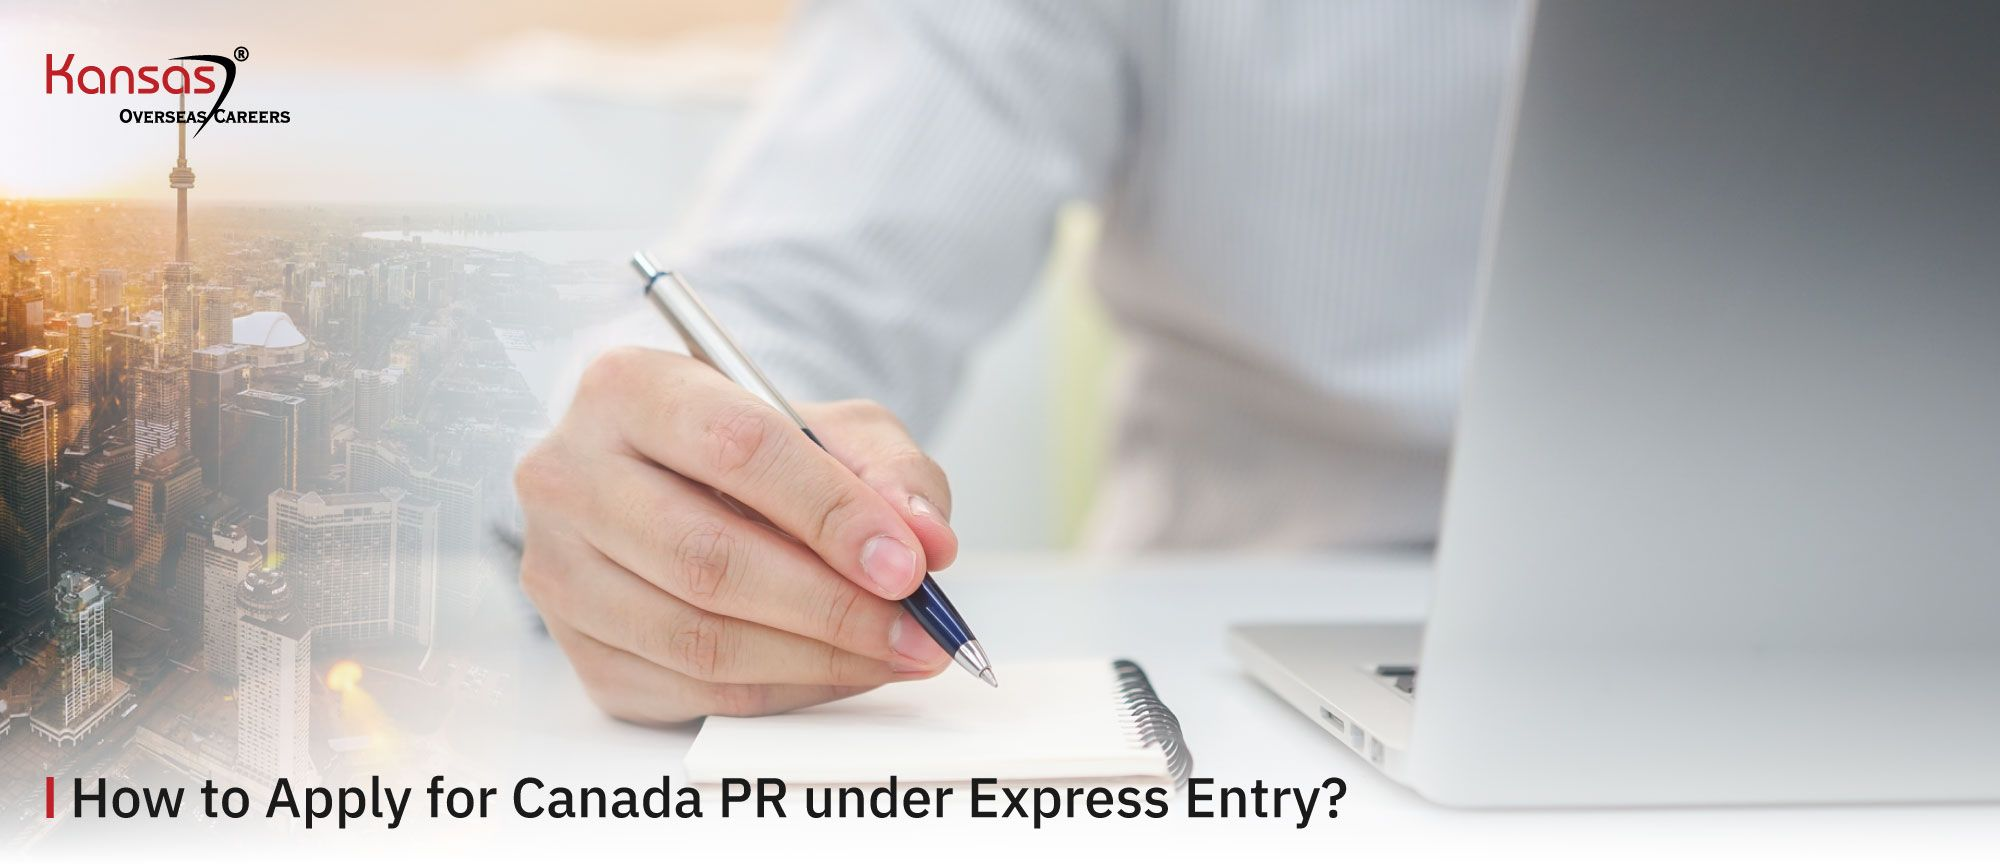 How-to-Apply-for-Canada-PR-under-Express-Entry-